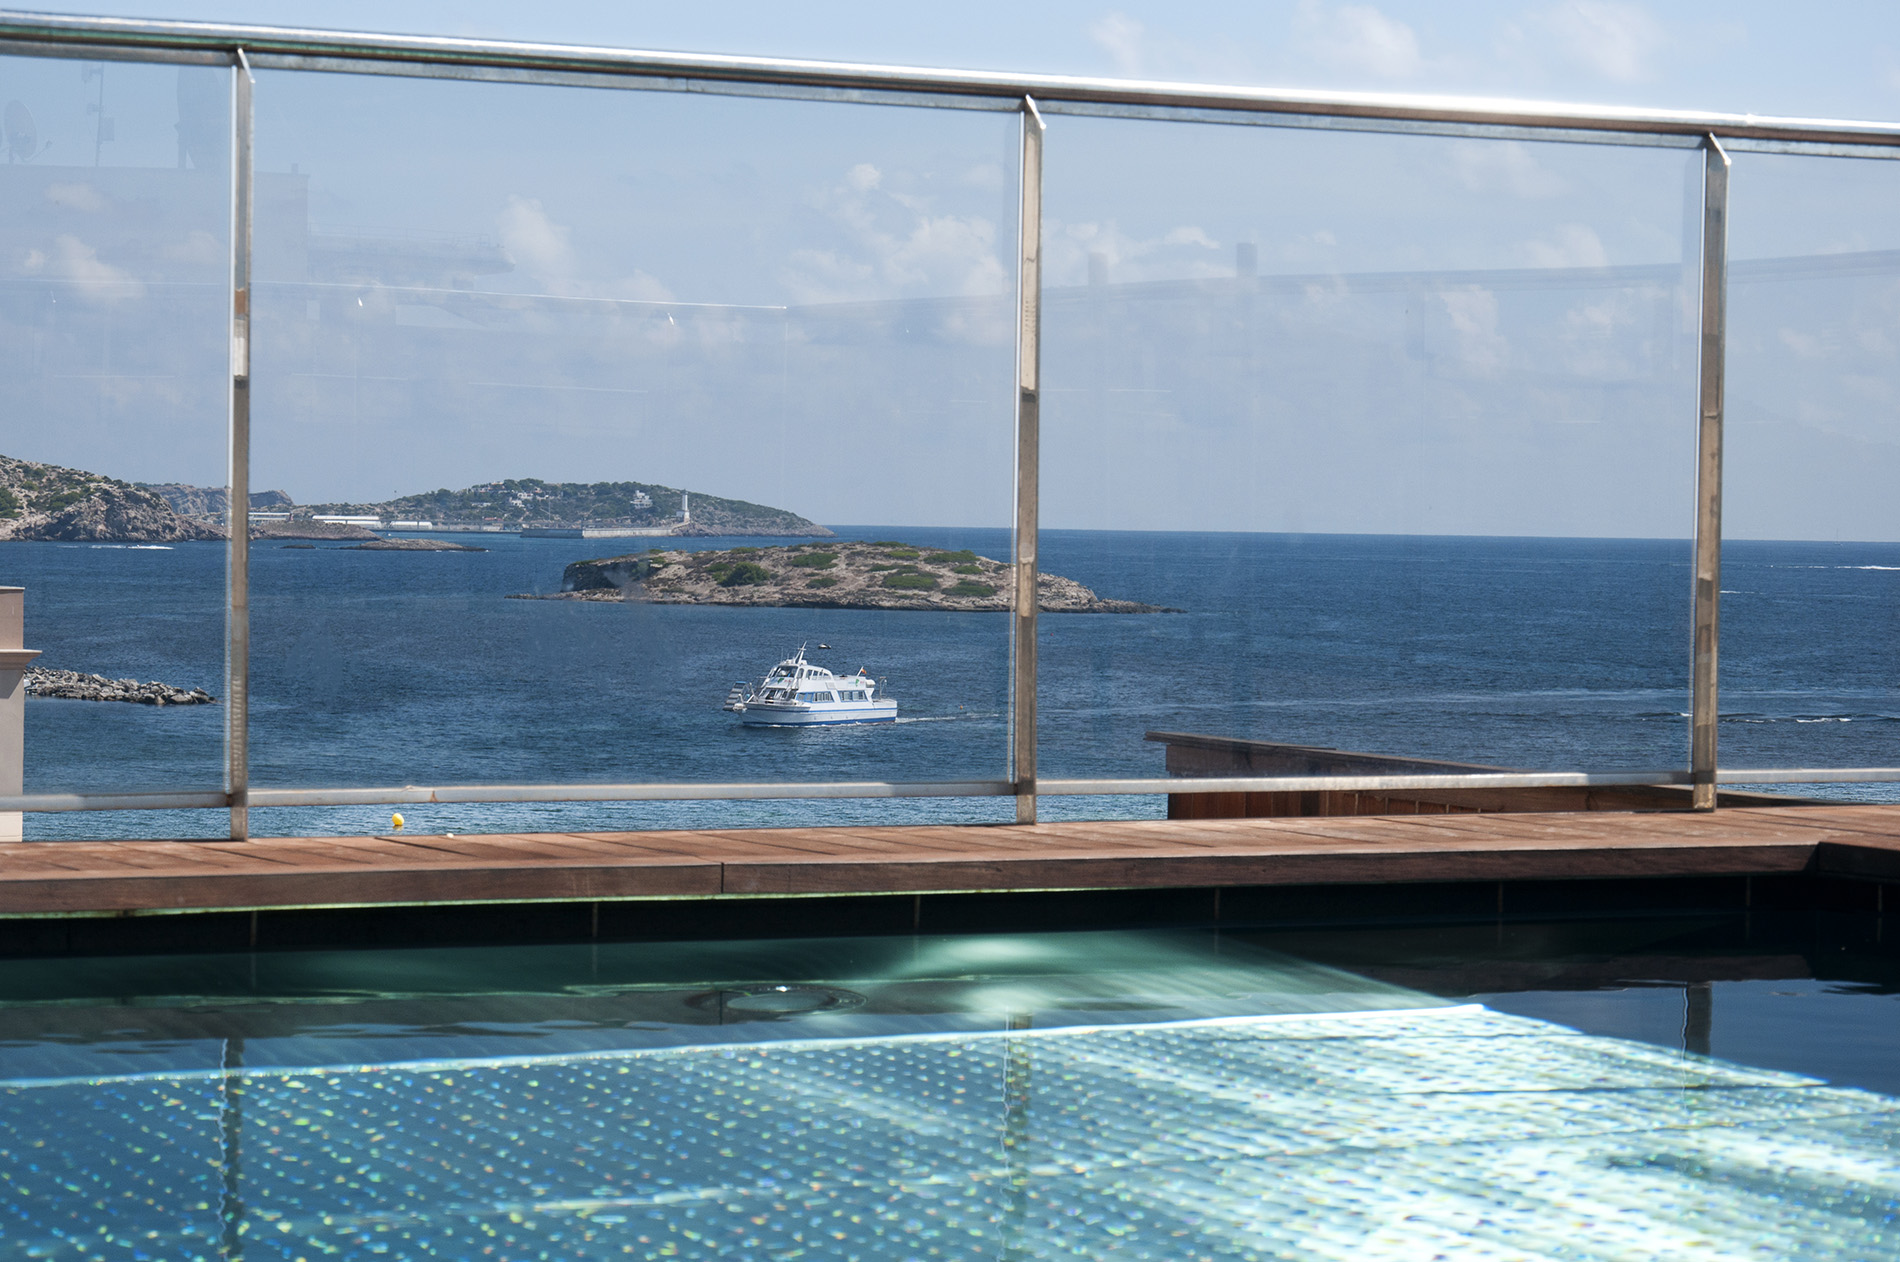 Apartment for Sale at Apartment With Sea View Ibiza, Ibiza 07800 Spain